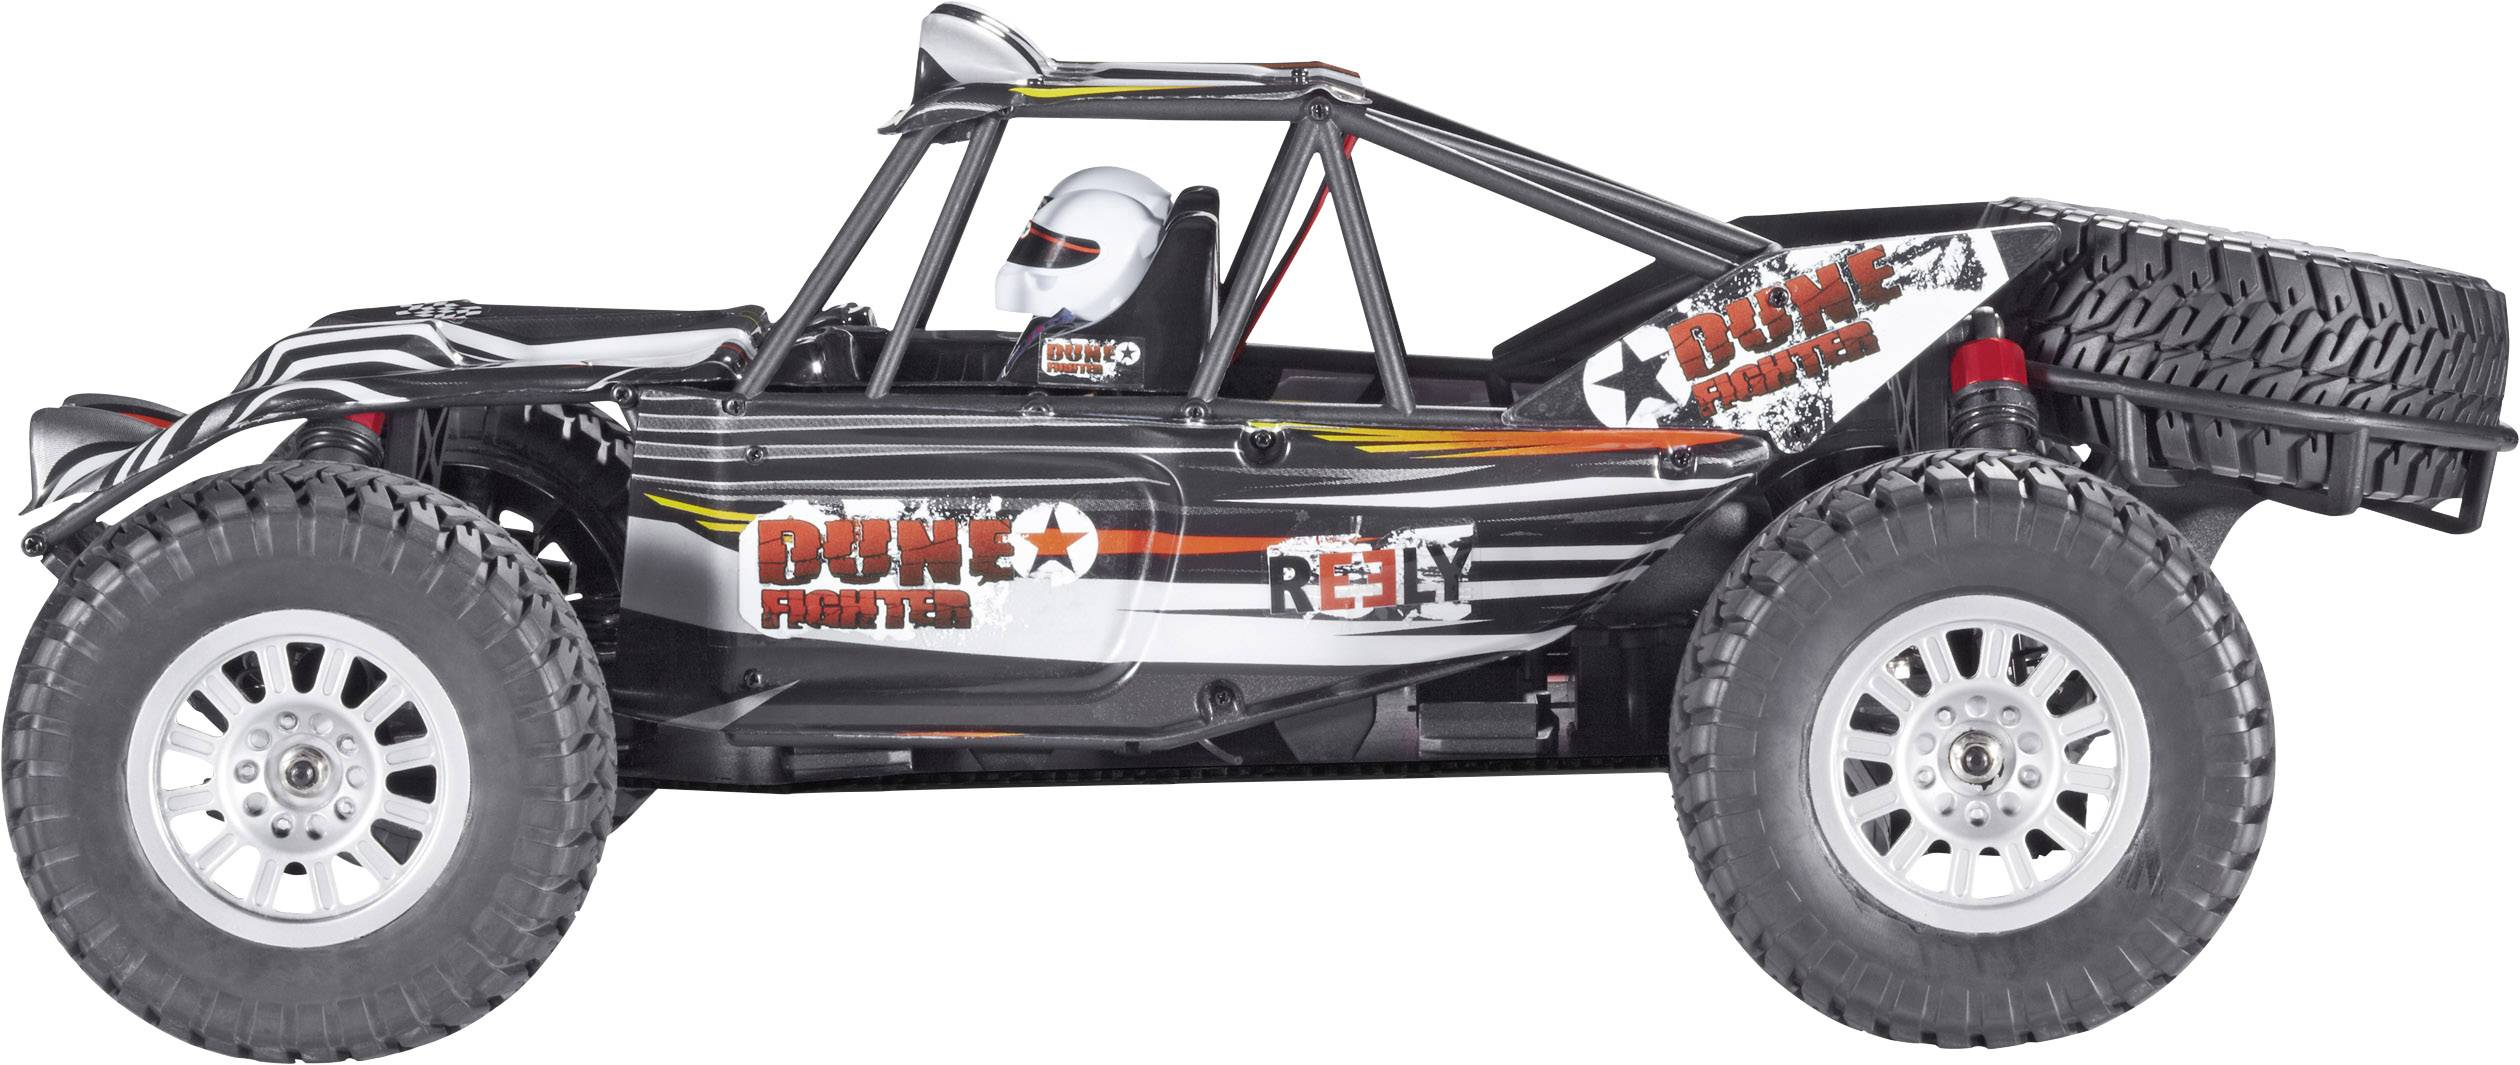 reely dune fighter 1 10 rc auto elektro buggy 4wd. Black Bedroom Furniture Sets. Home Design Ideas